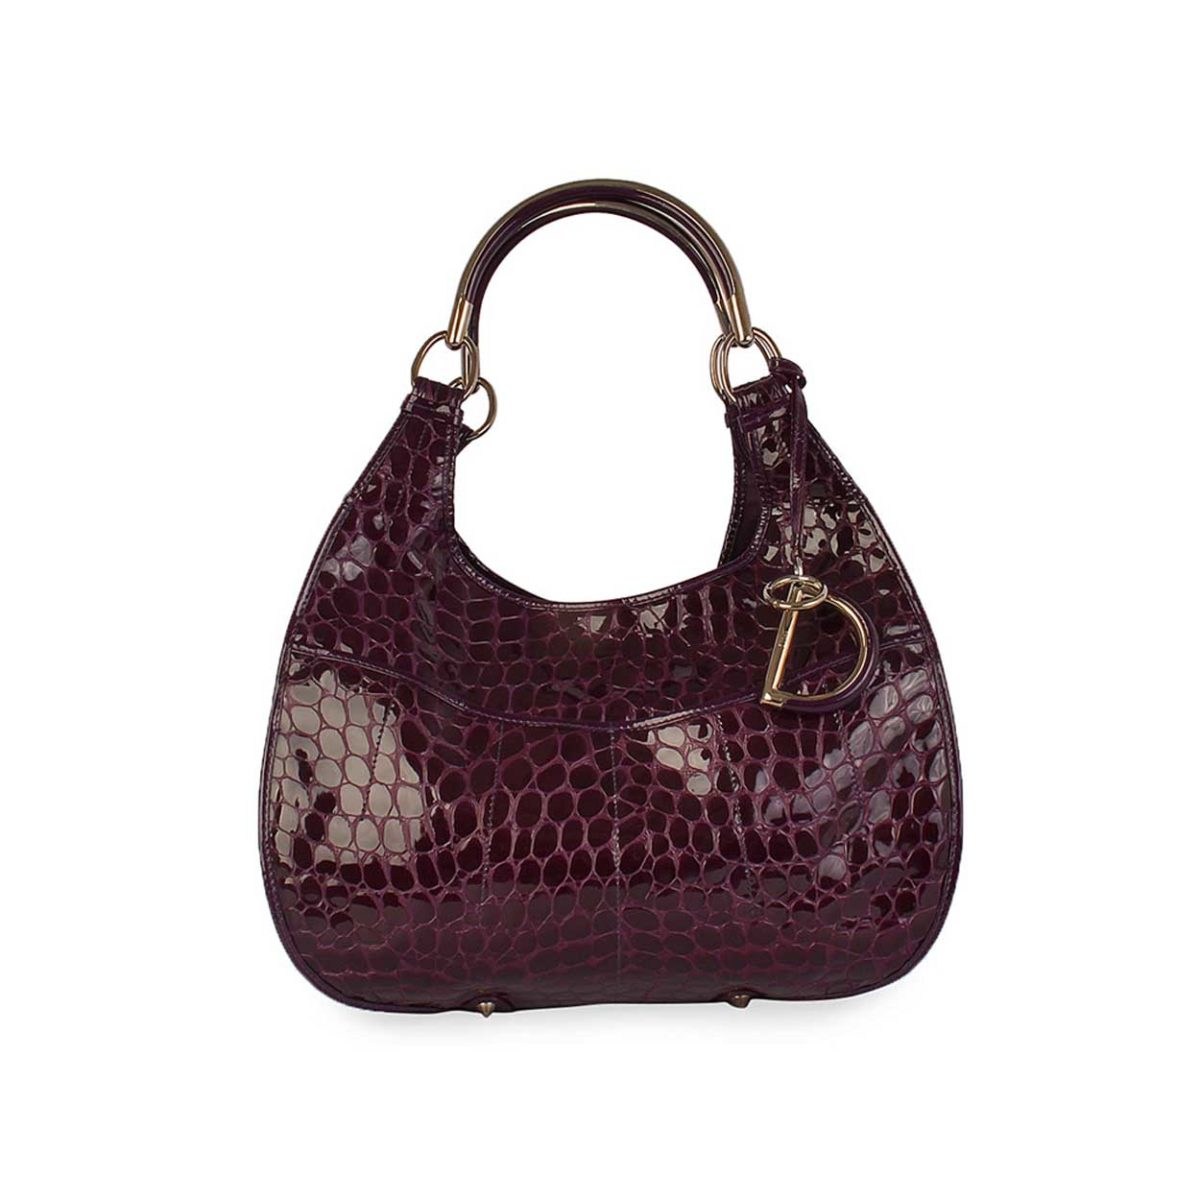 CHRISTIAN DIOR Patent Crocodile Embossed Leather Hobo ...